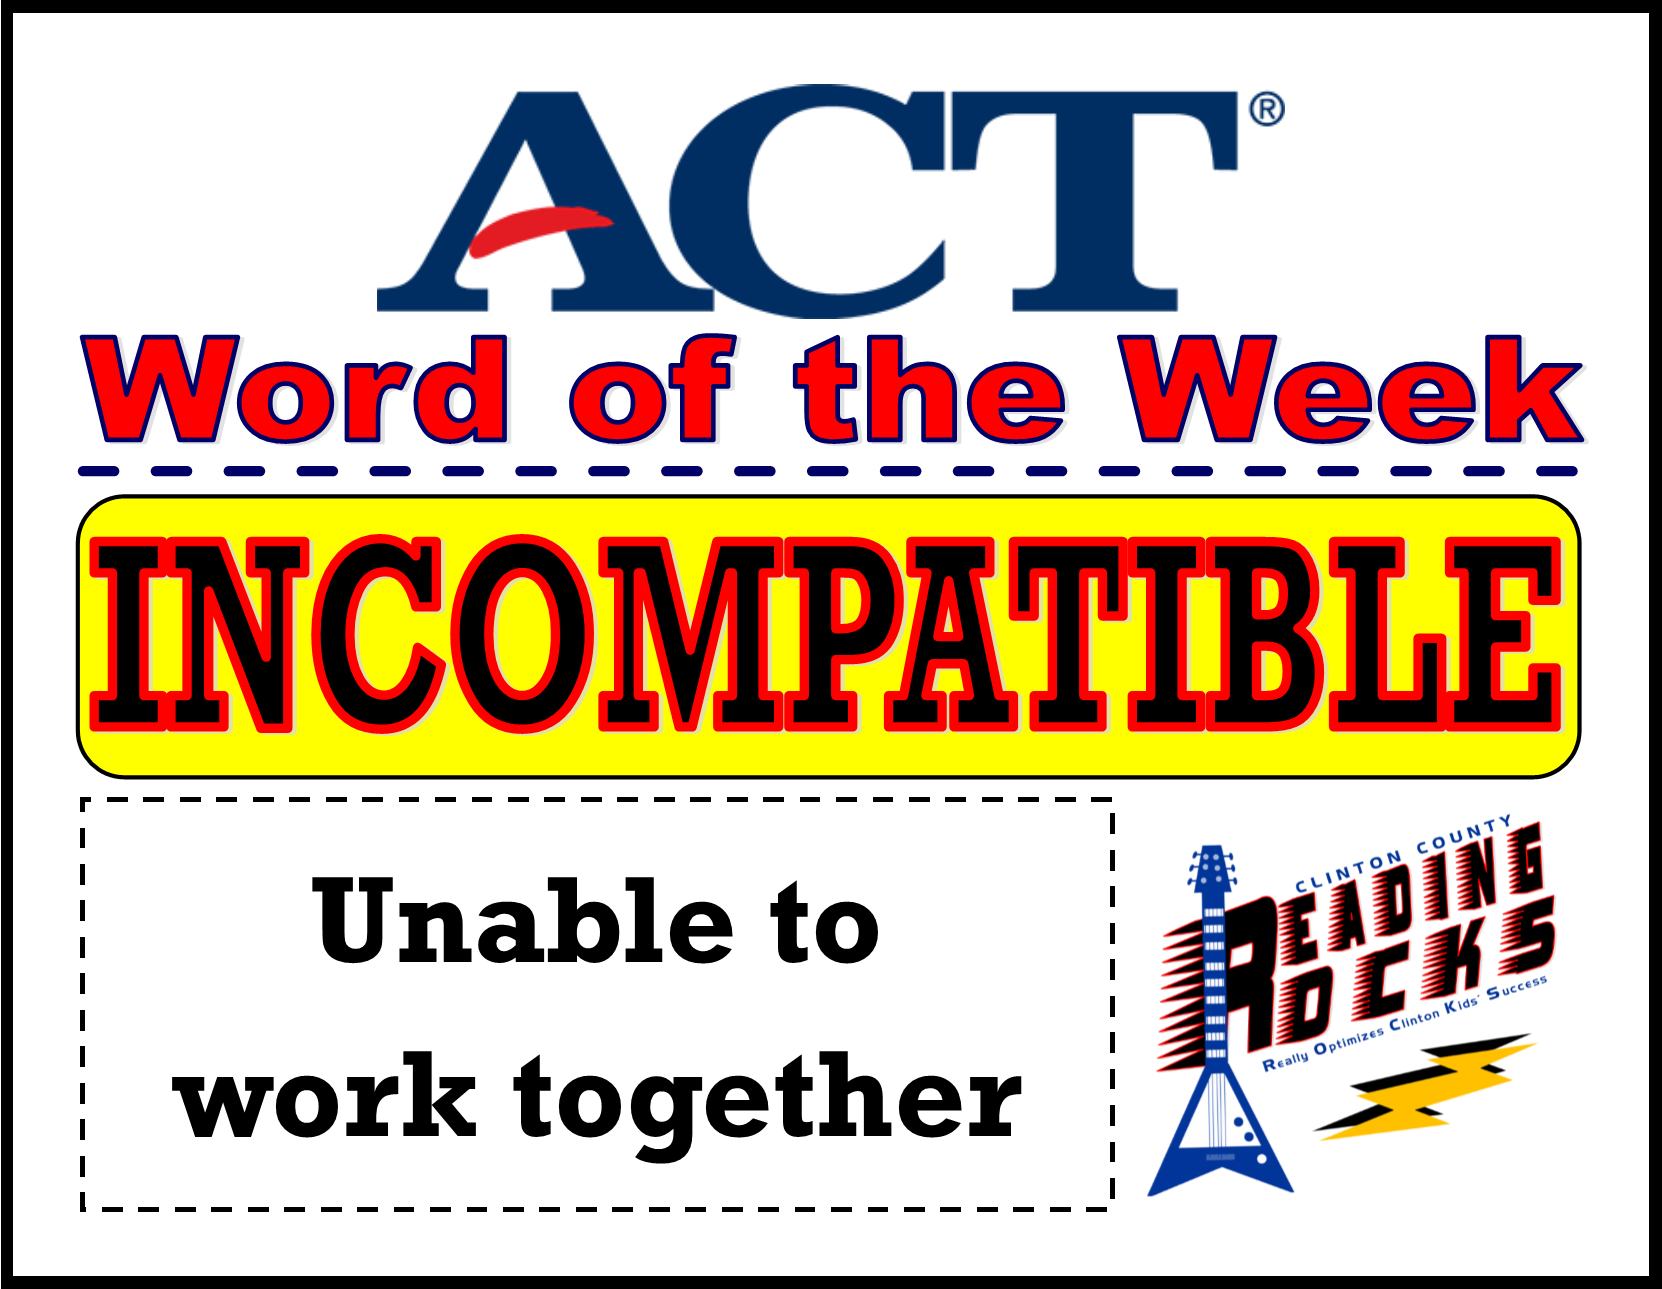 The CCHS Reading ROCKS ACT Word of the Week is - INCOMPATIBLE!